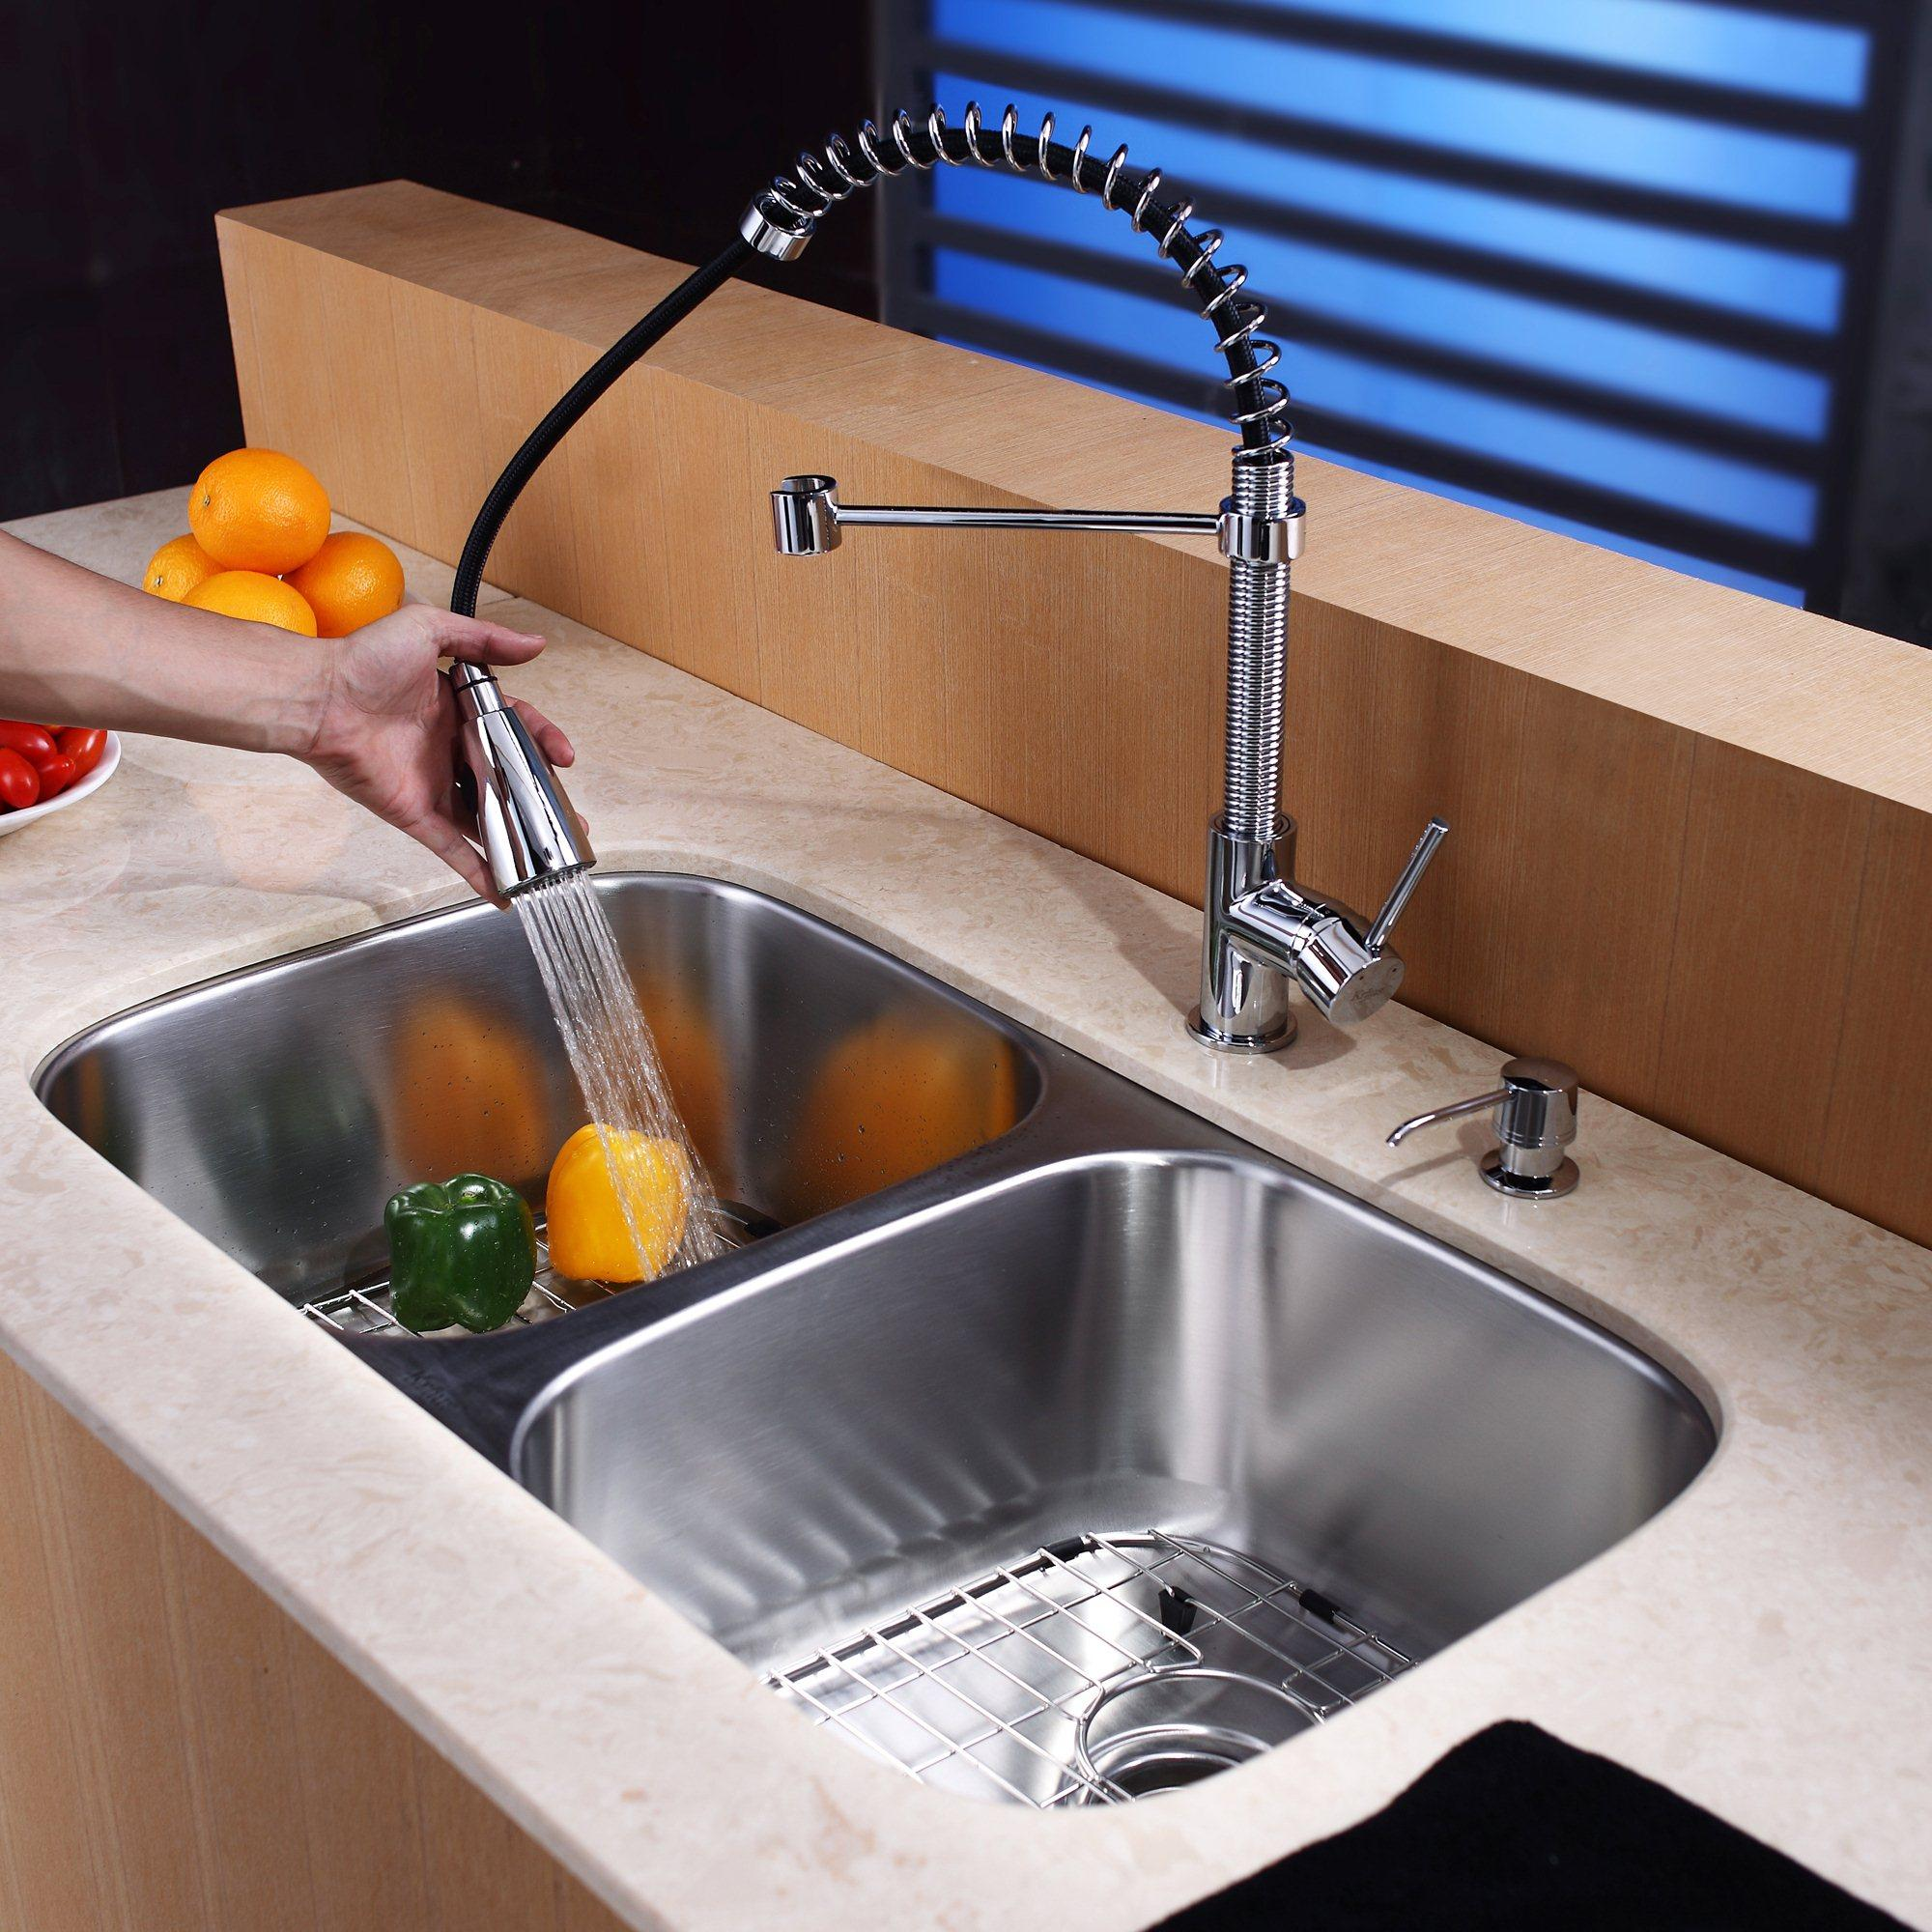 Kraus 105 X 16 Undermount Kitchen Sink With Faucet And Soap